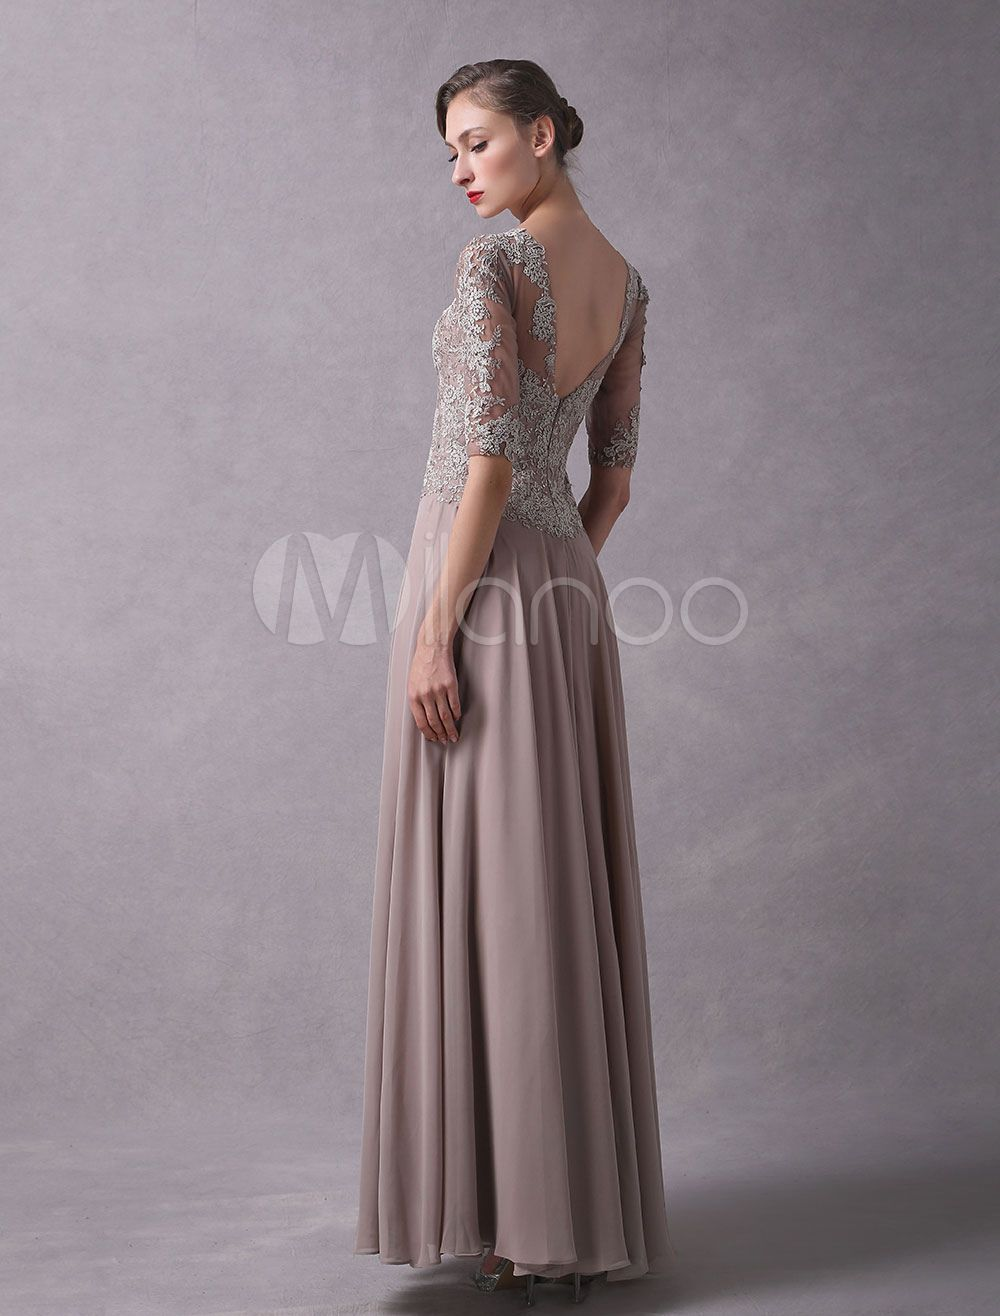 08309ebcc7 Wedding Guest Dresses Lace Applique Chiffon Mother Of The Bride Dress Half  Sleeve Illusion Floor Length Wedding Party Dresses  Applique